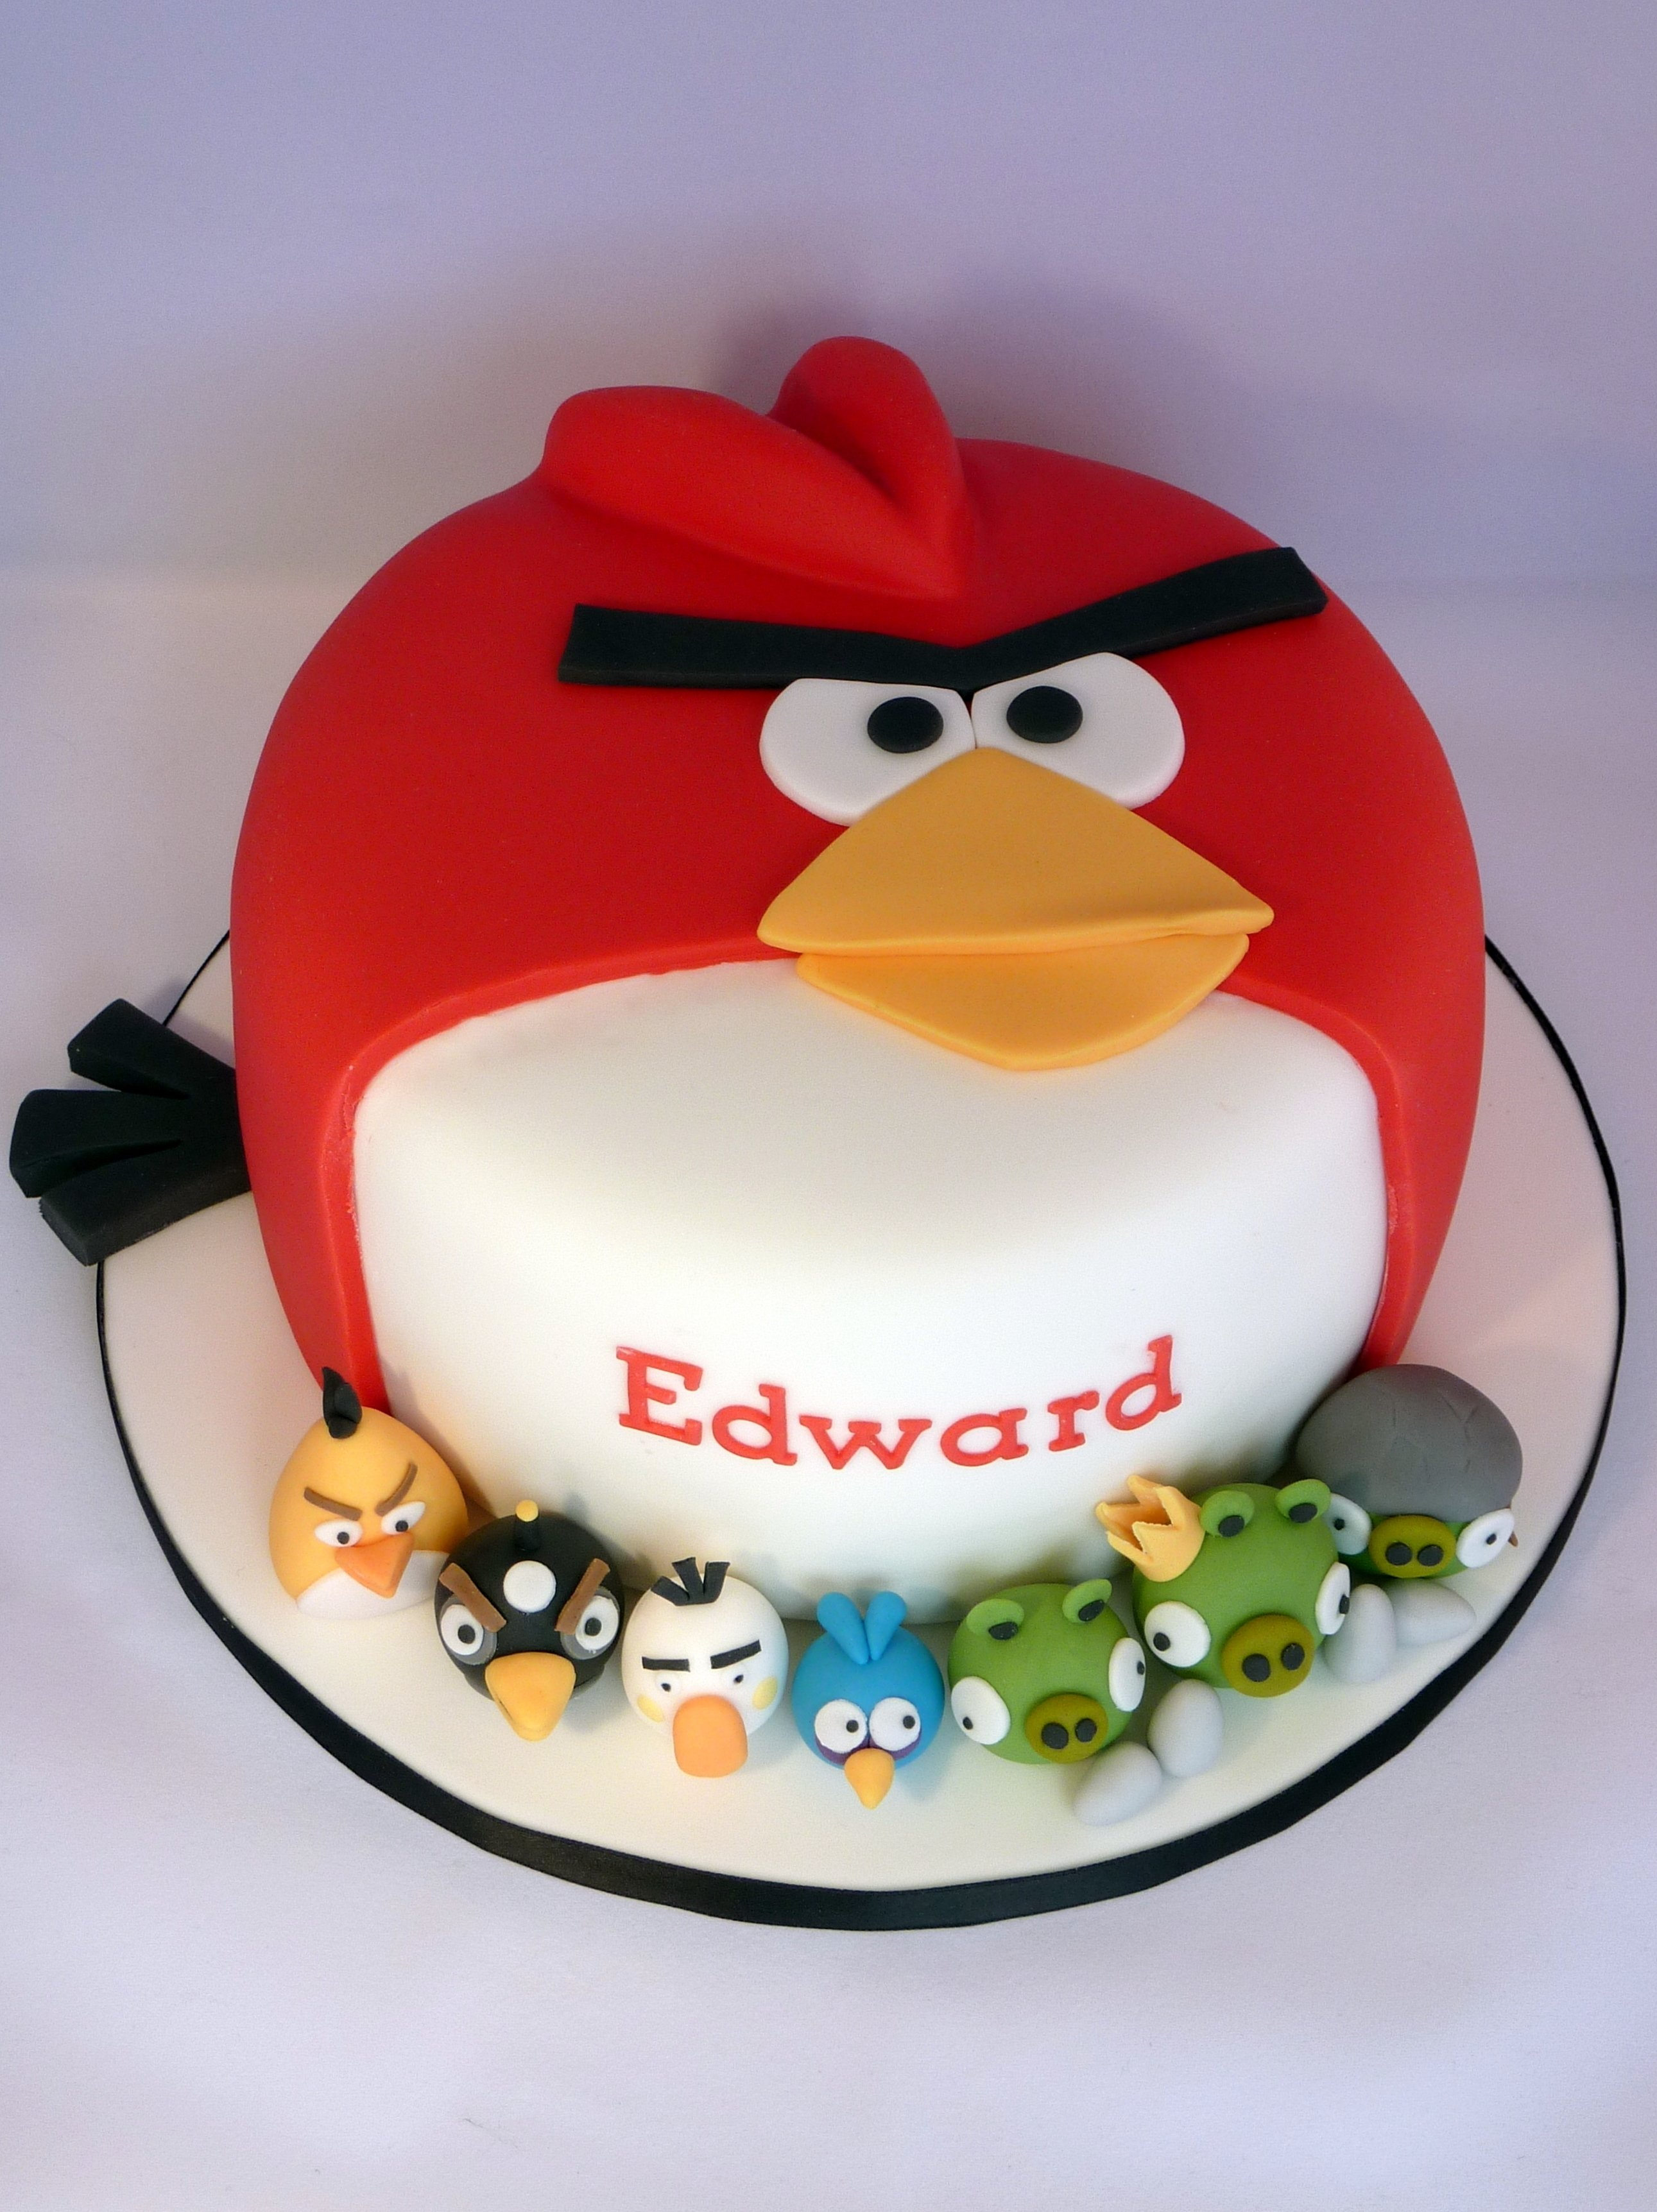 10 Fabulous Angry Birds Birthday Party Ideas angry birds cake my son would love this angry birds party 2020